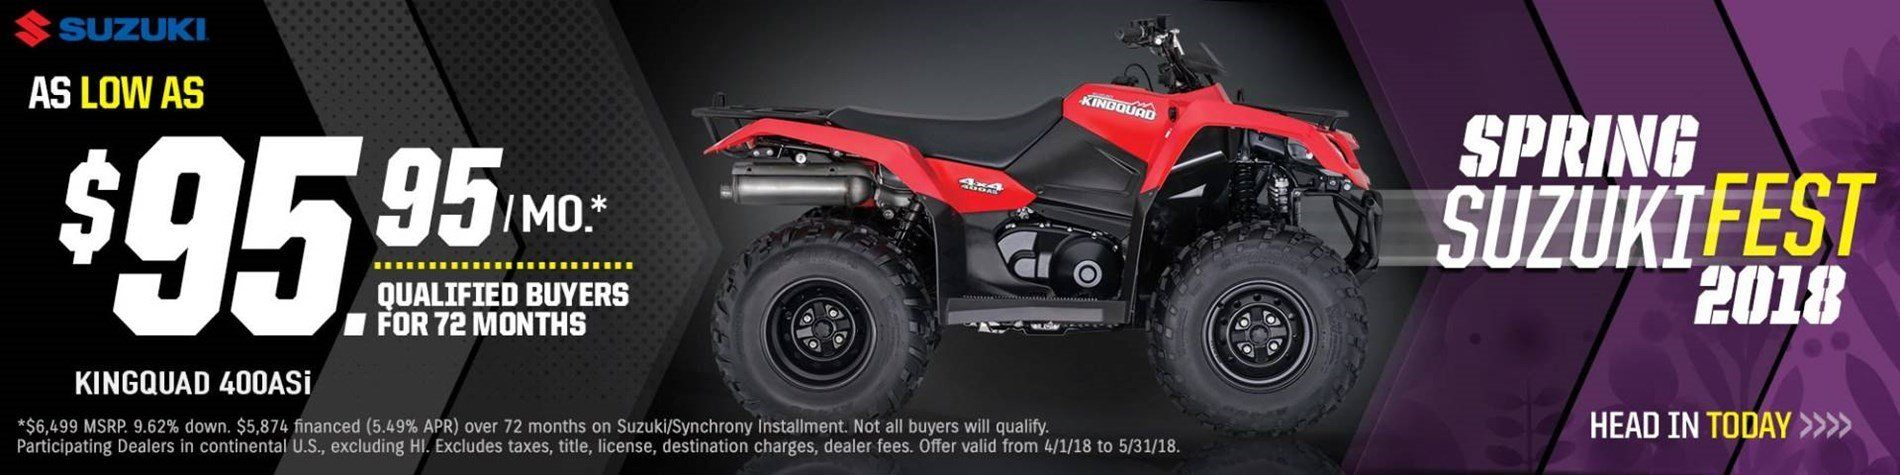 Suzuki - Spring Suzuki Fest for Utility Sport and Sport ATV